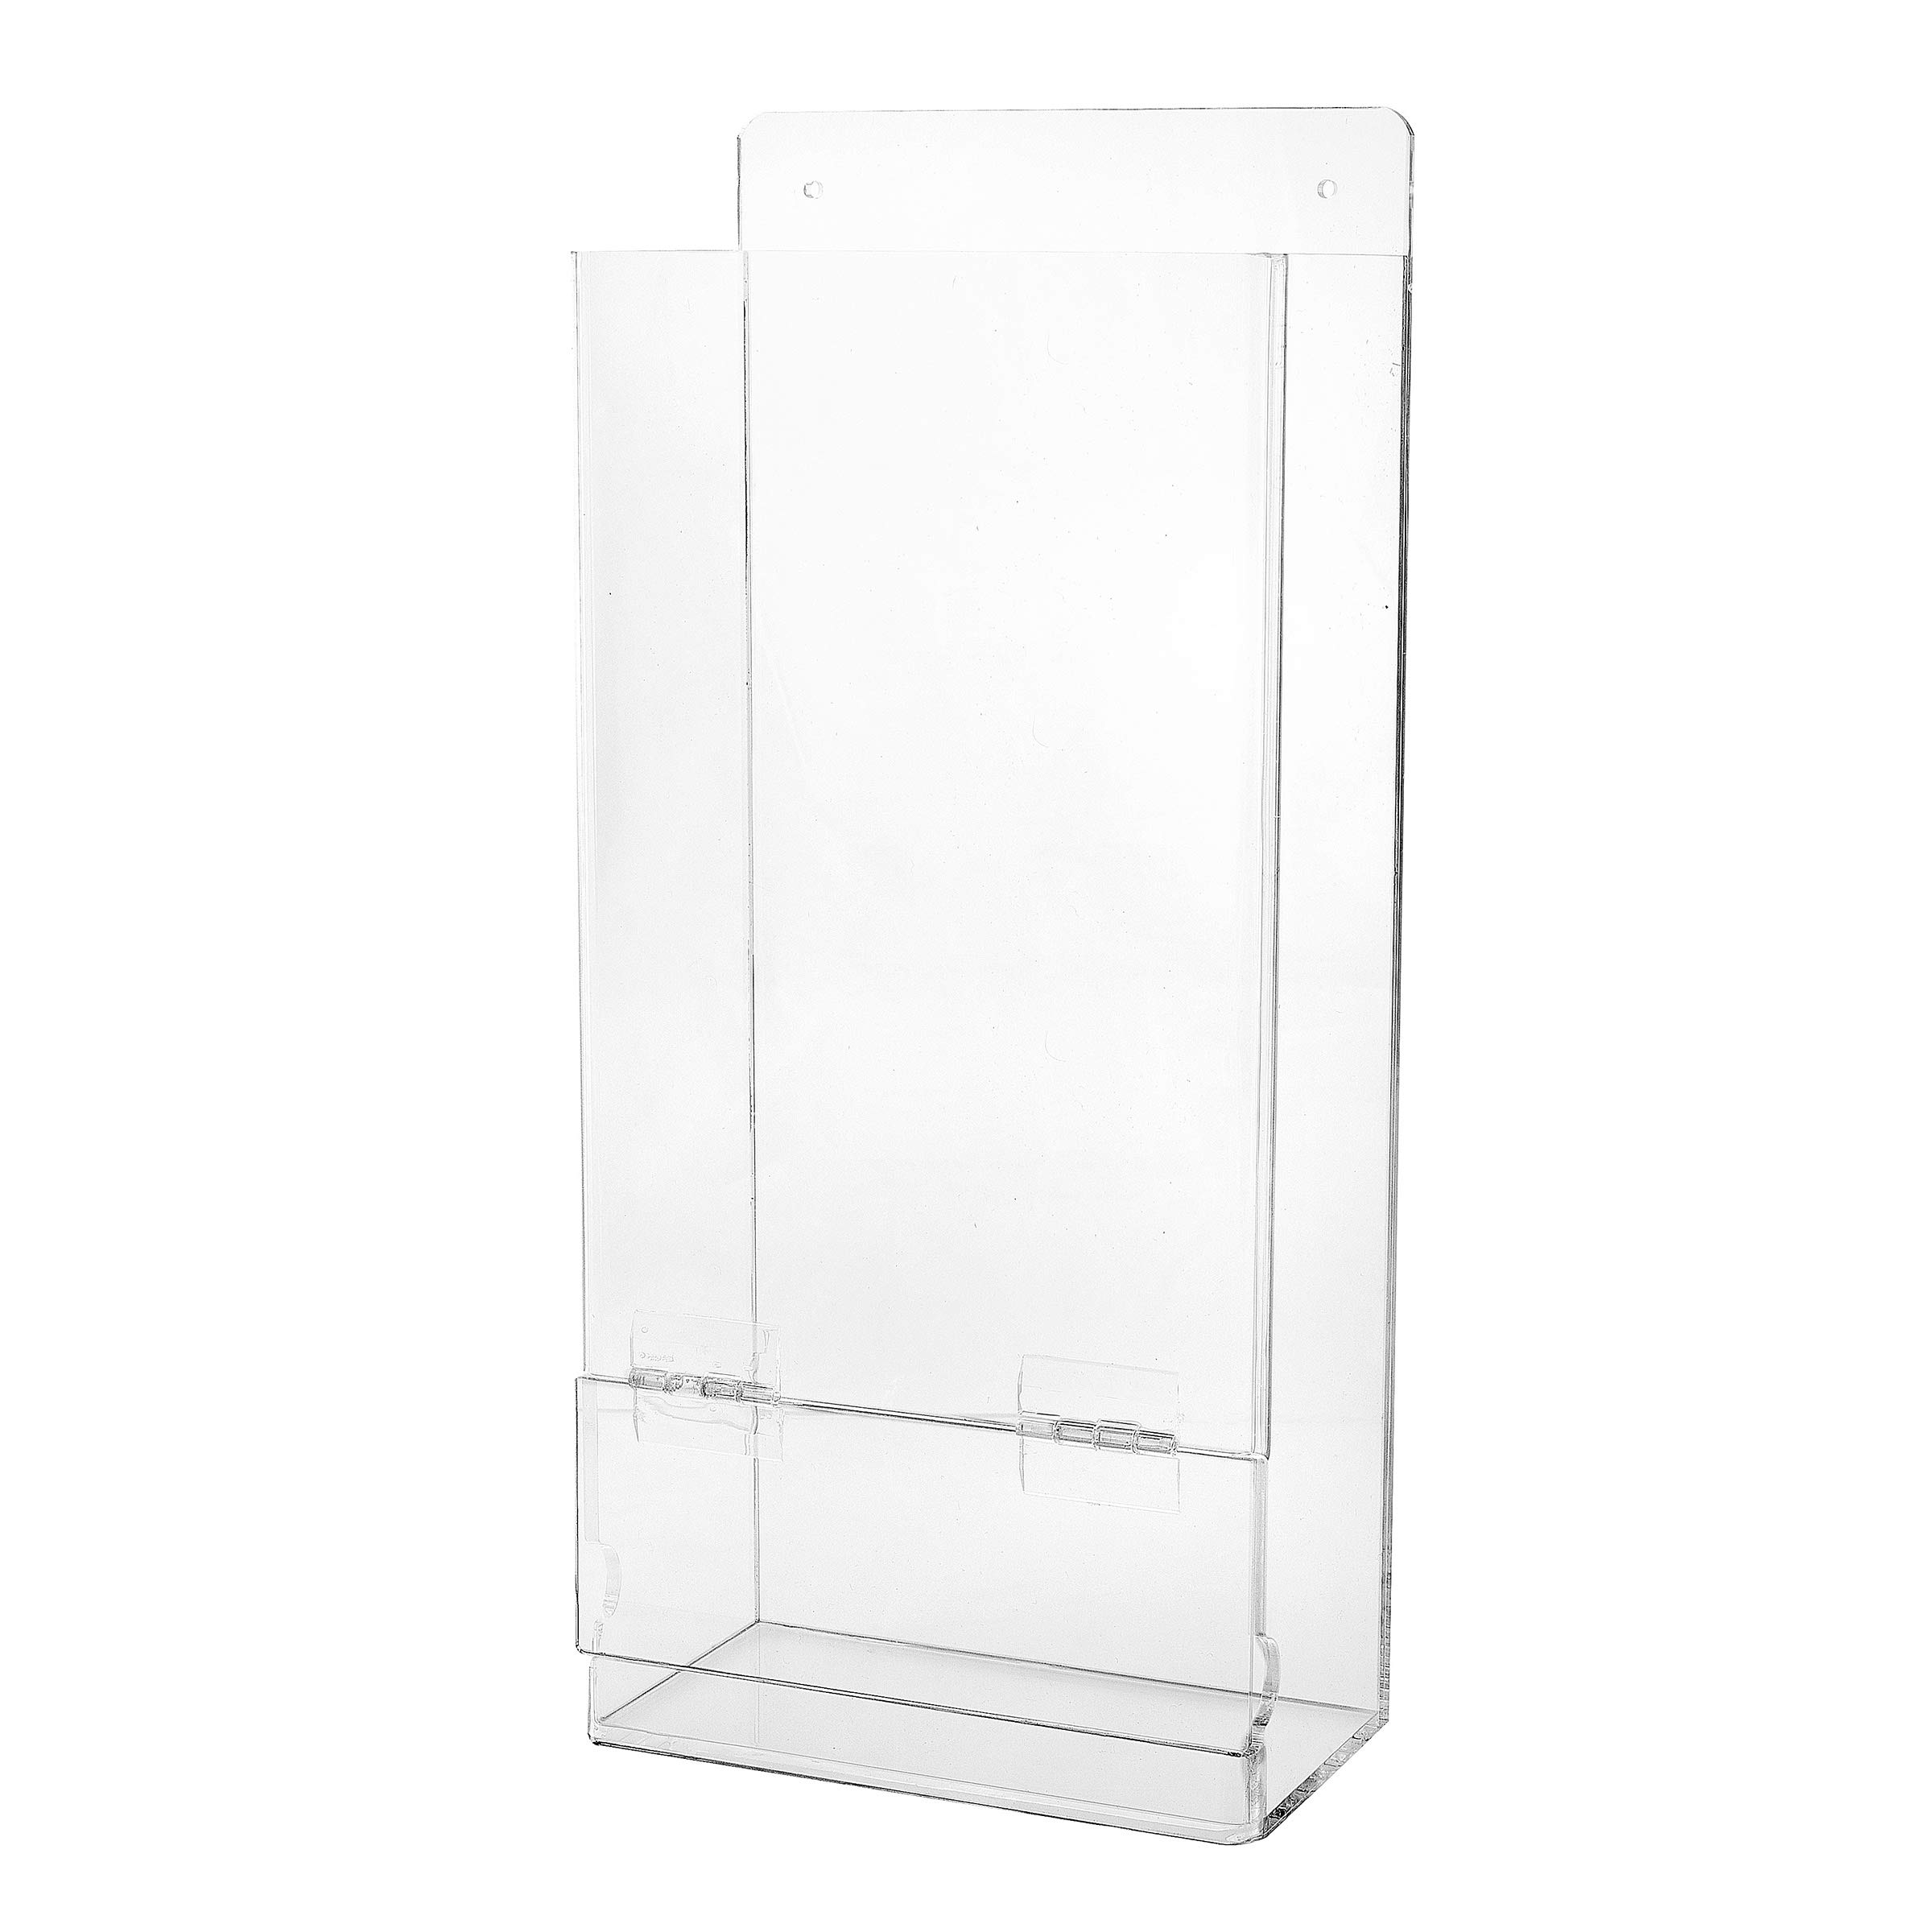 AdirOffice Safety Glasses and Glove Dispenser - Column Type Wall Mounted Acrylic Receptacle - Easy Access Organizer for Laboratory & Workplace Use by AdirOffice (Image #1)